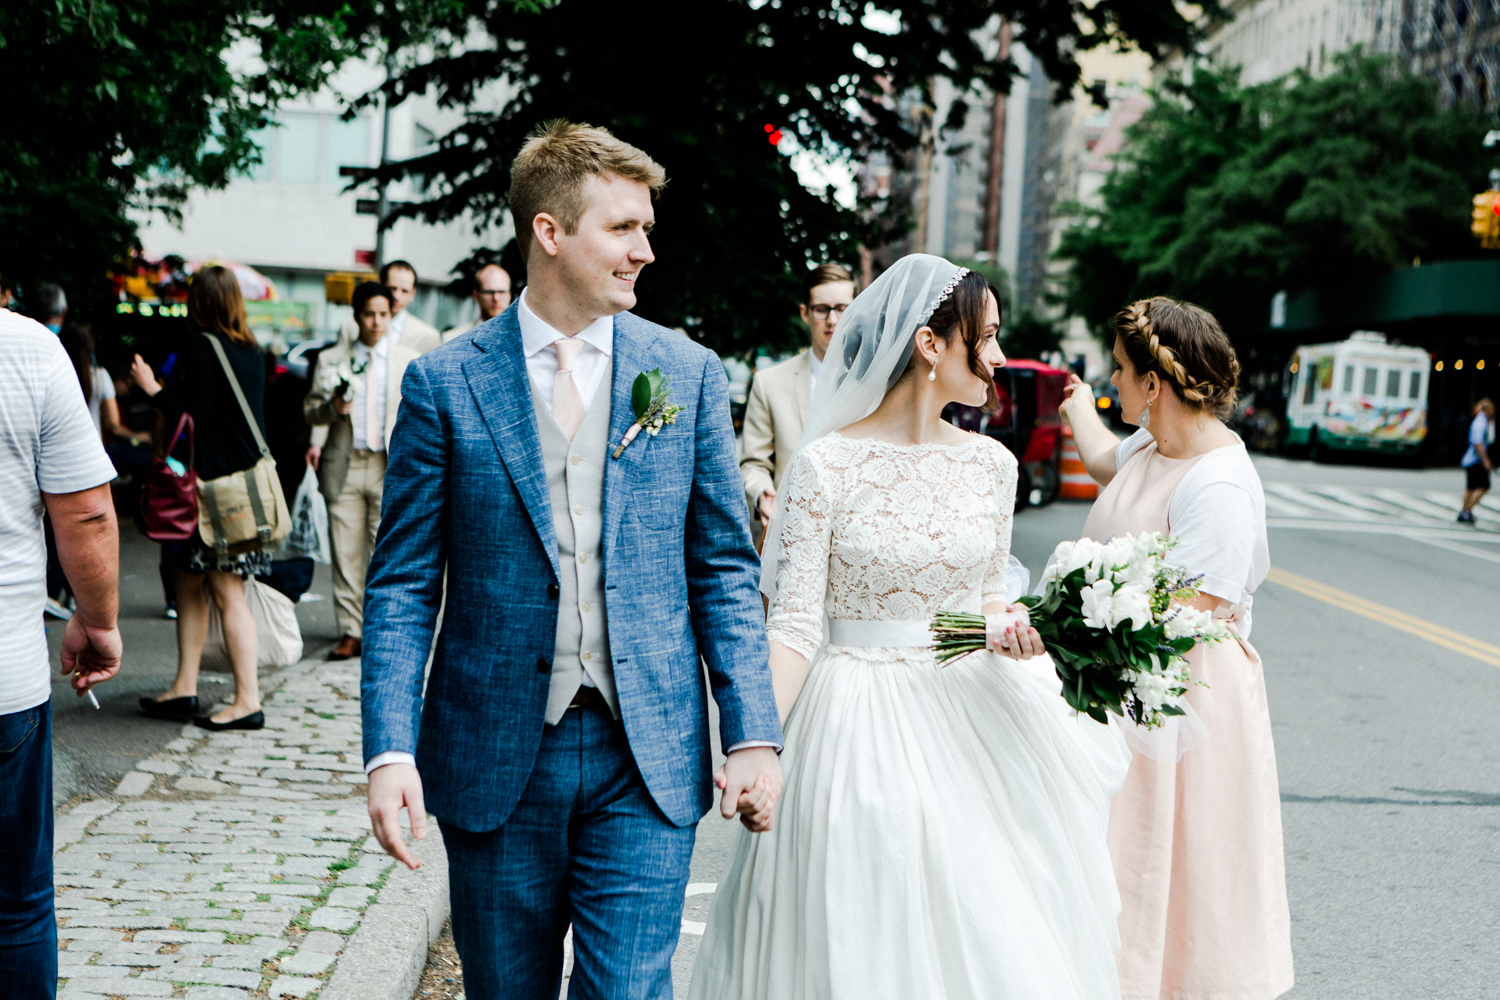 lissie_loomis_photo_nyc_brooklyn_wedding_engagement_photographer_photography-46.JPG